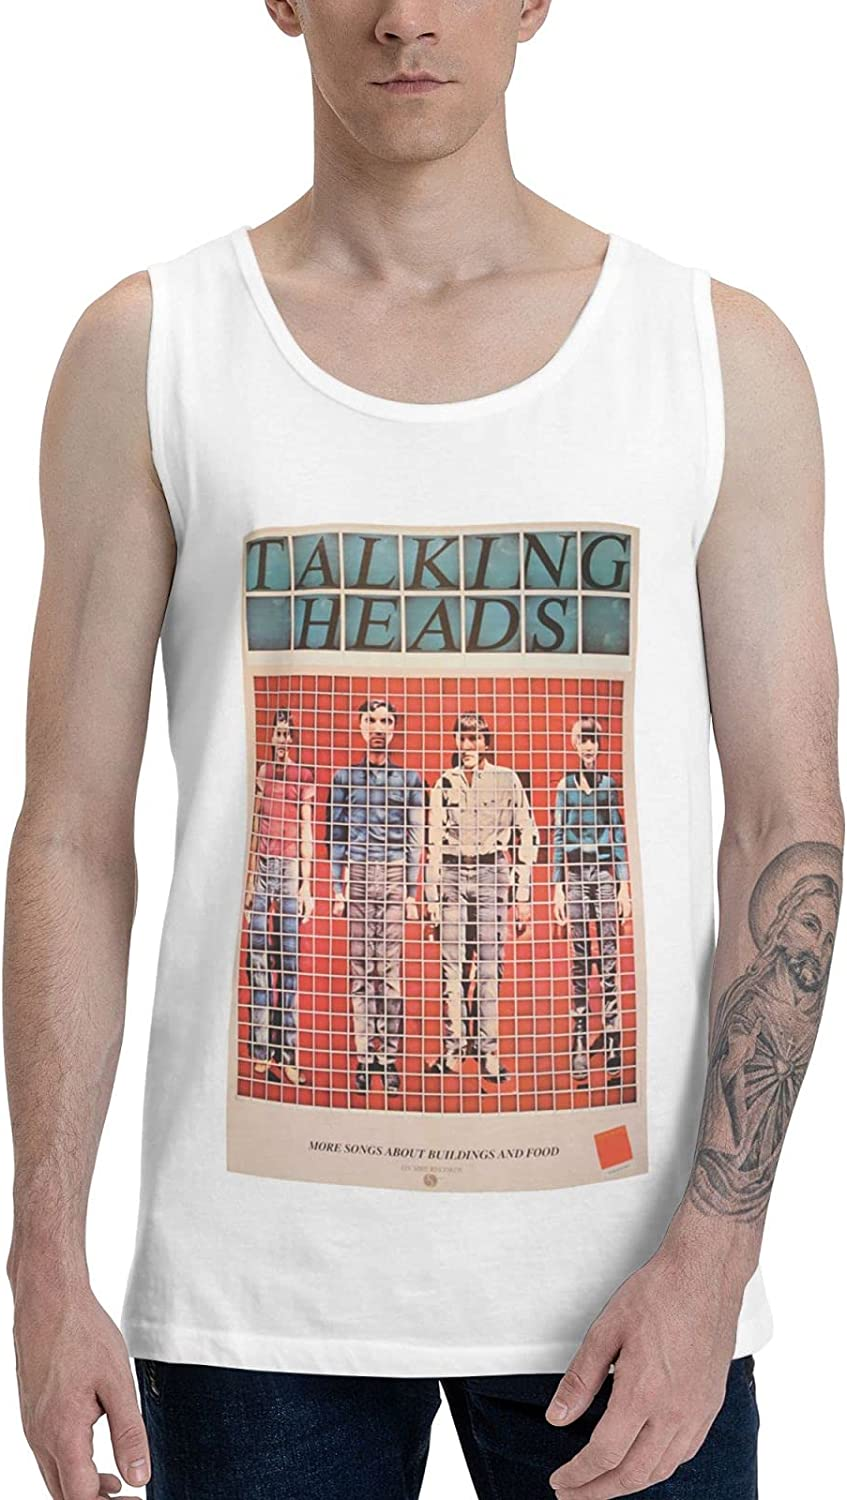 Talking Heads More Songs About Buildings and Food Tank Top Man's Cotton Sleeveless Round Neck T Shirt Vest